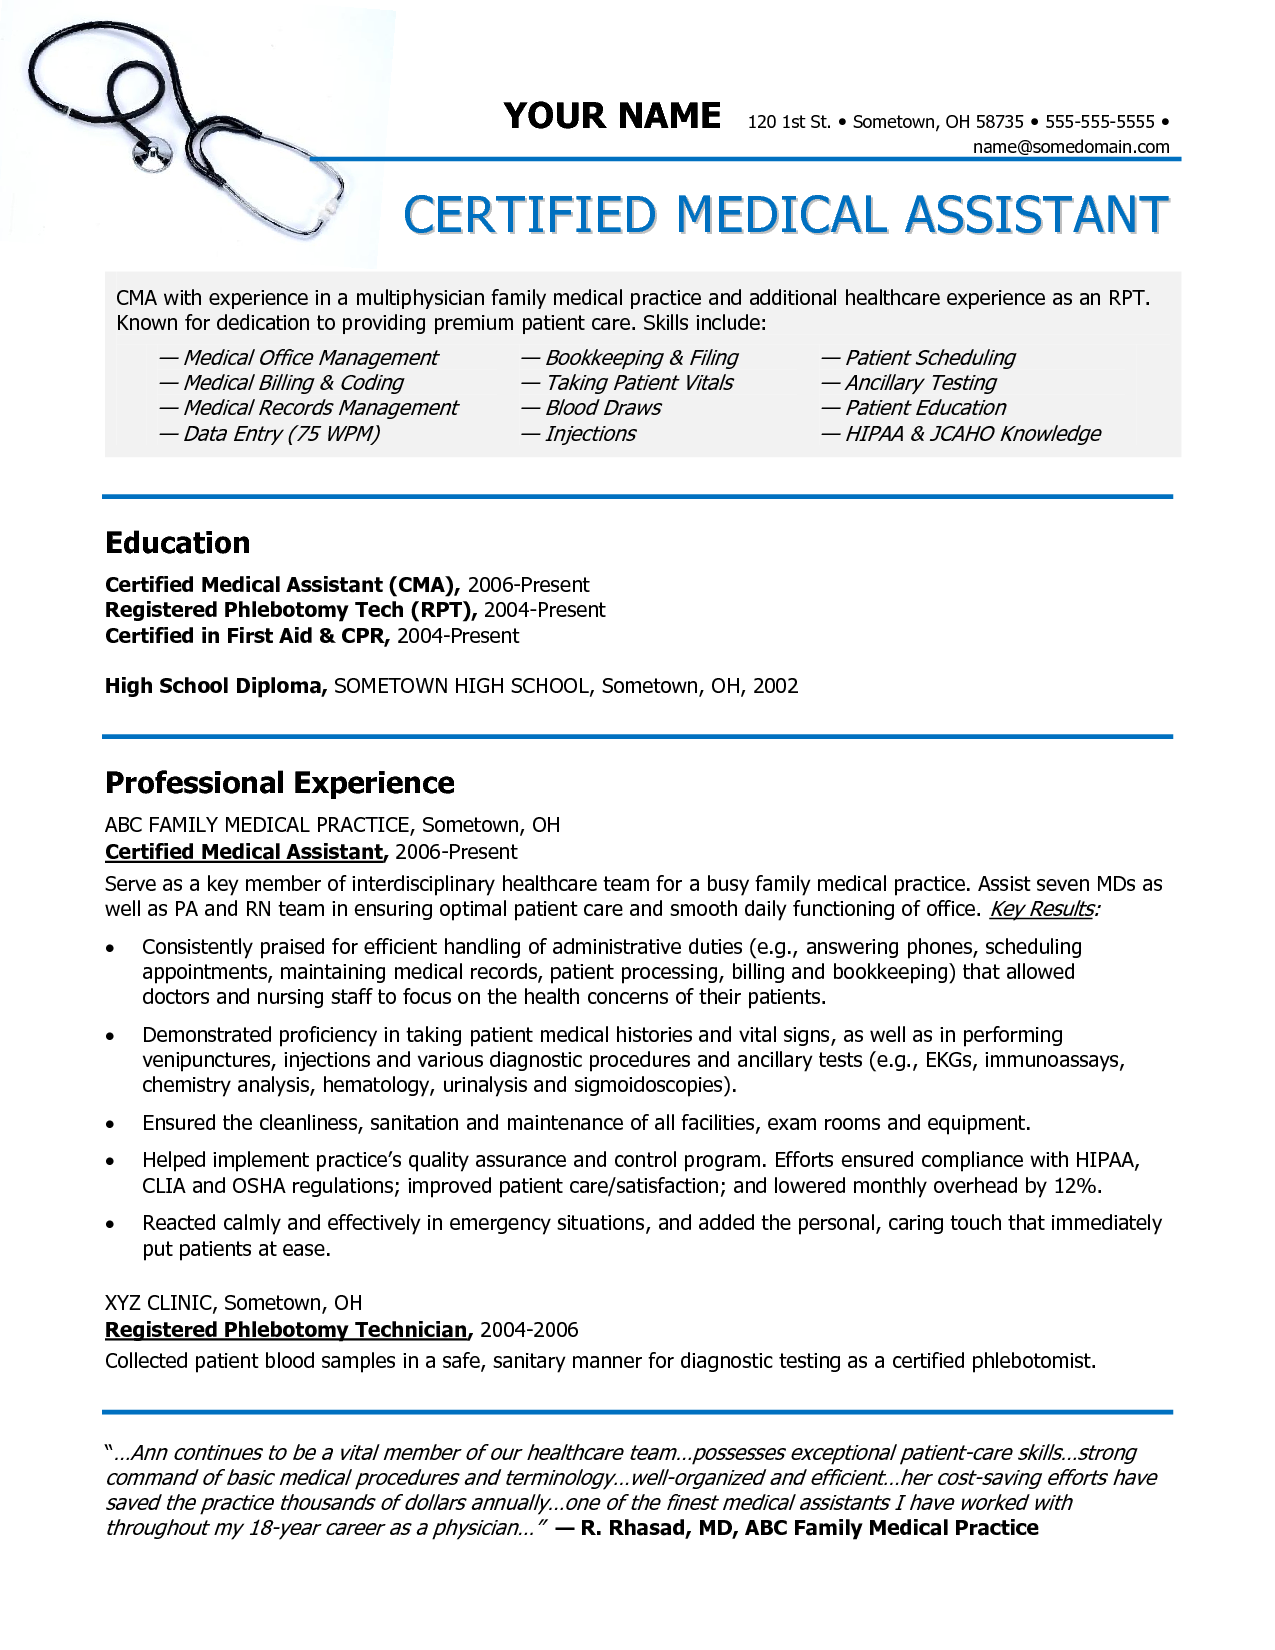 Beautiful Objective For Resume Medical Assistant Medical Assistant Resume Sample,  Medical Resume Templates 14 Medical Assistant Resume Uxhandycom, Medical  Assistant ... Ideas Medical Assistant Objective